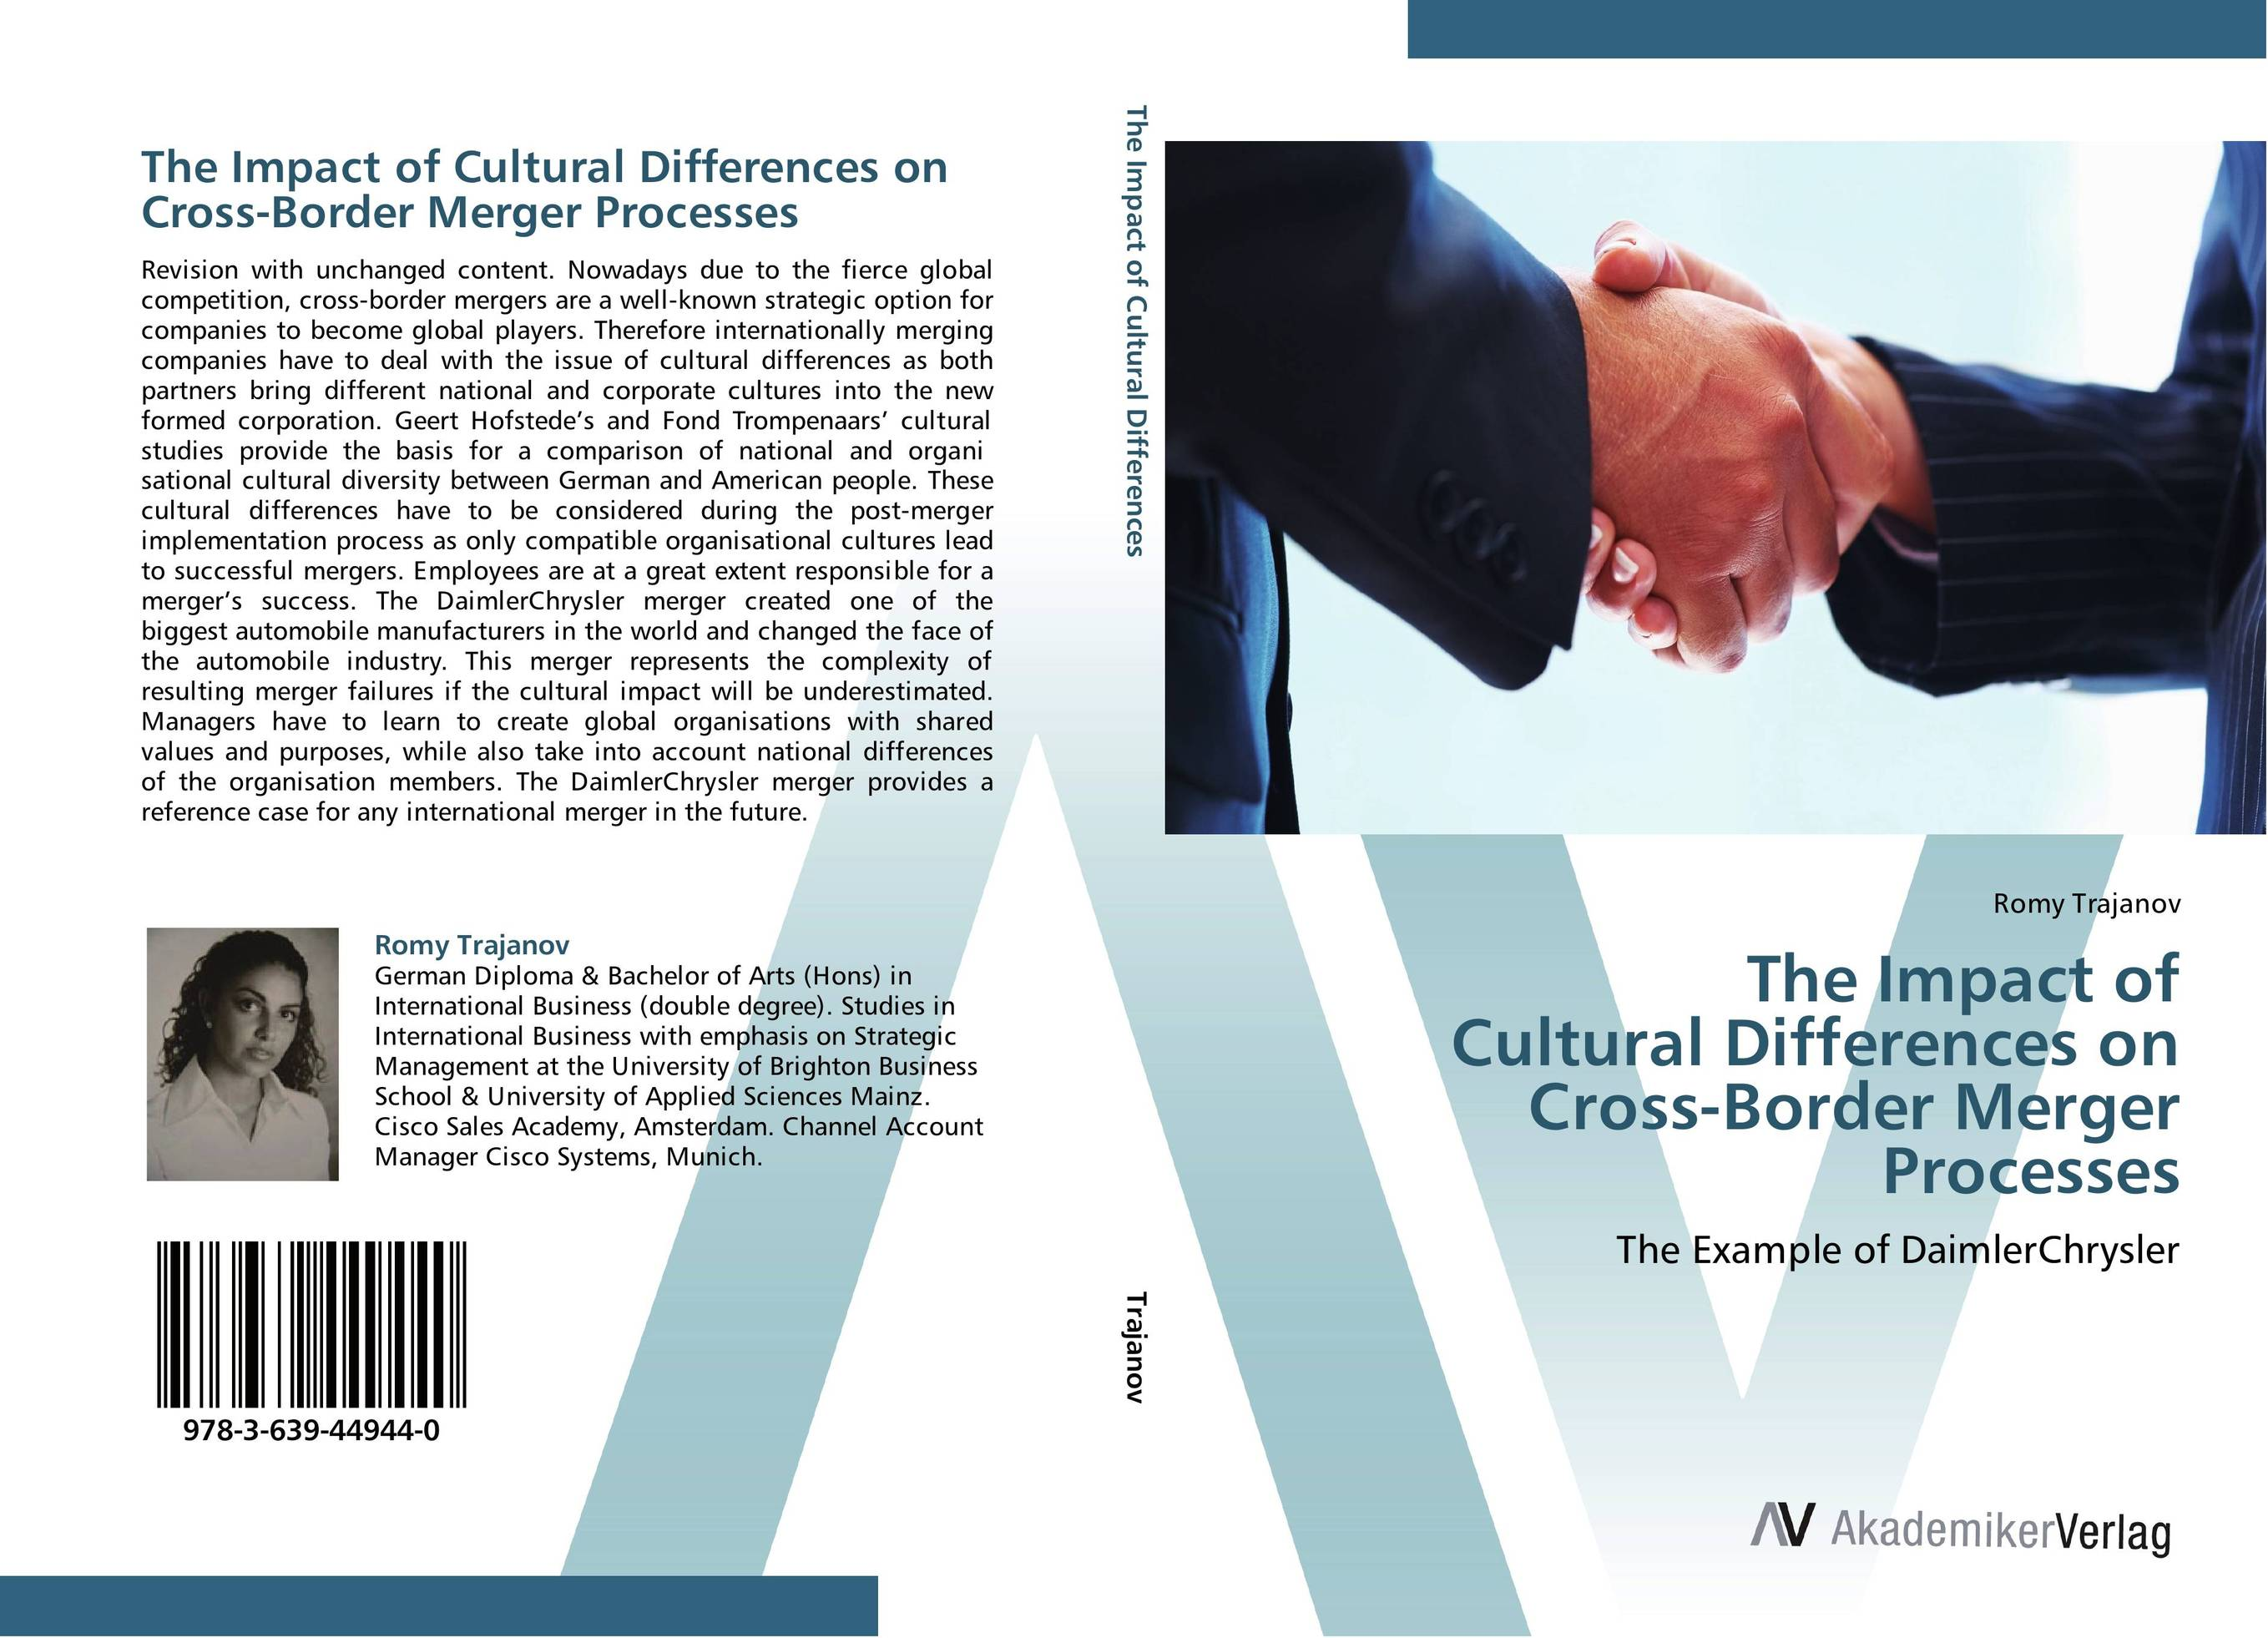 The Impact of Cultural Differences on Cross-Border Merger Processes thomas kirchner merger arbitrage how to profit from global event driven arbitrage